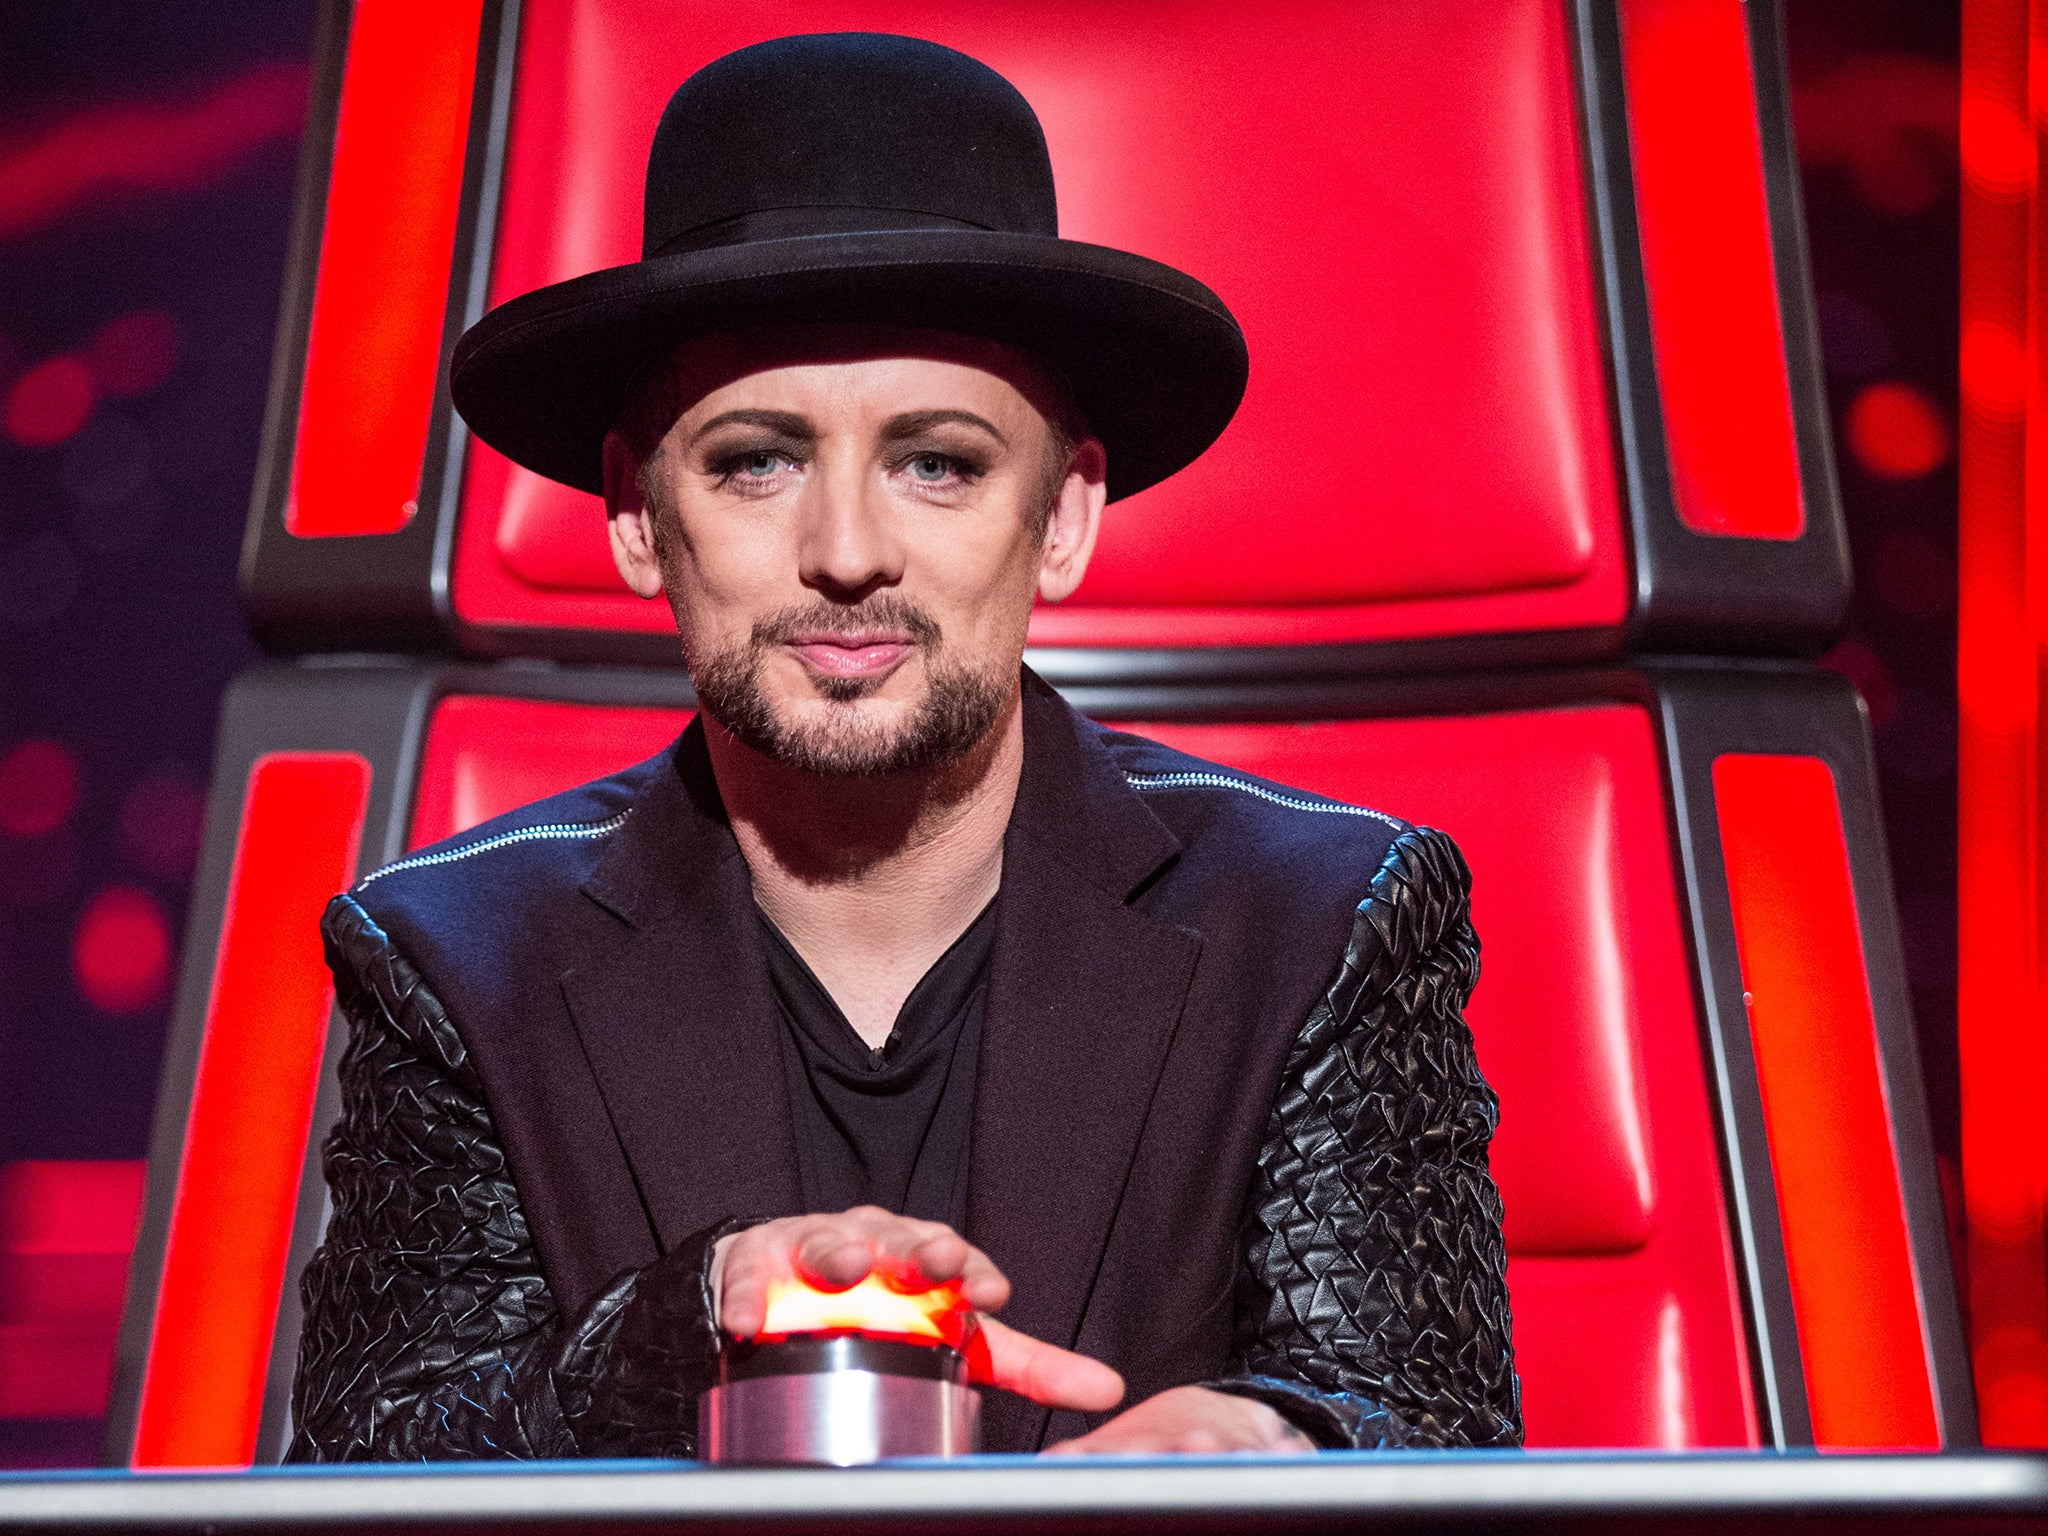 X Factor Judges Names The Voice, BBC1, revie...